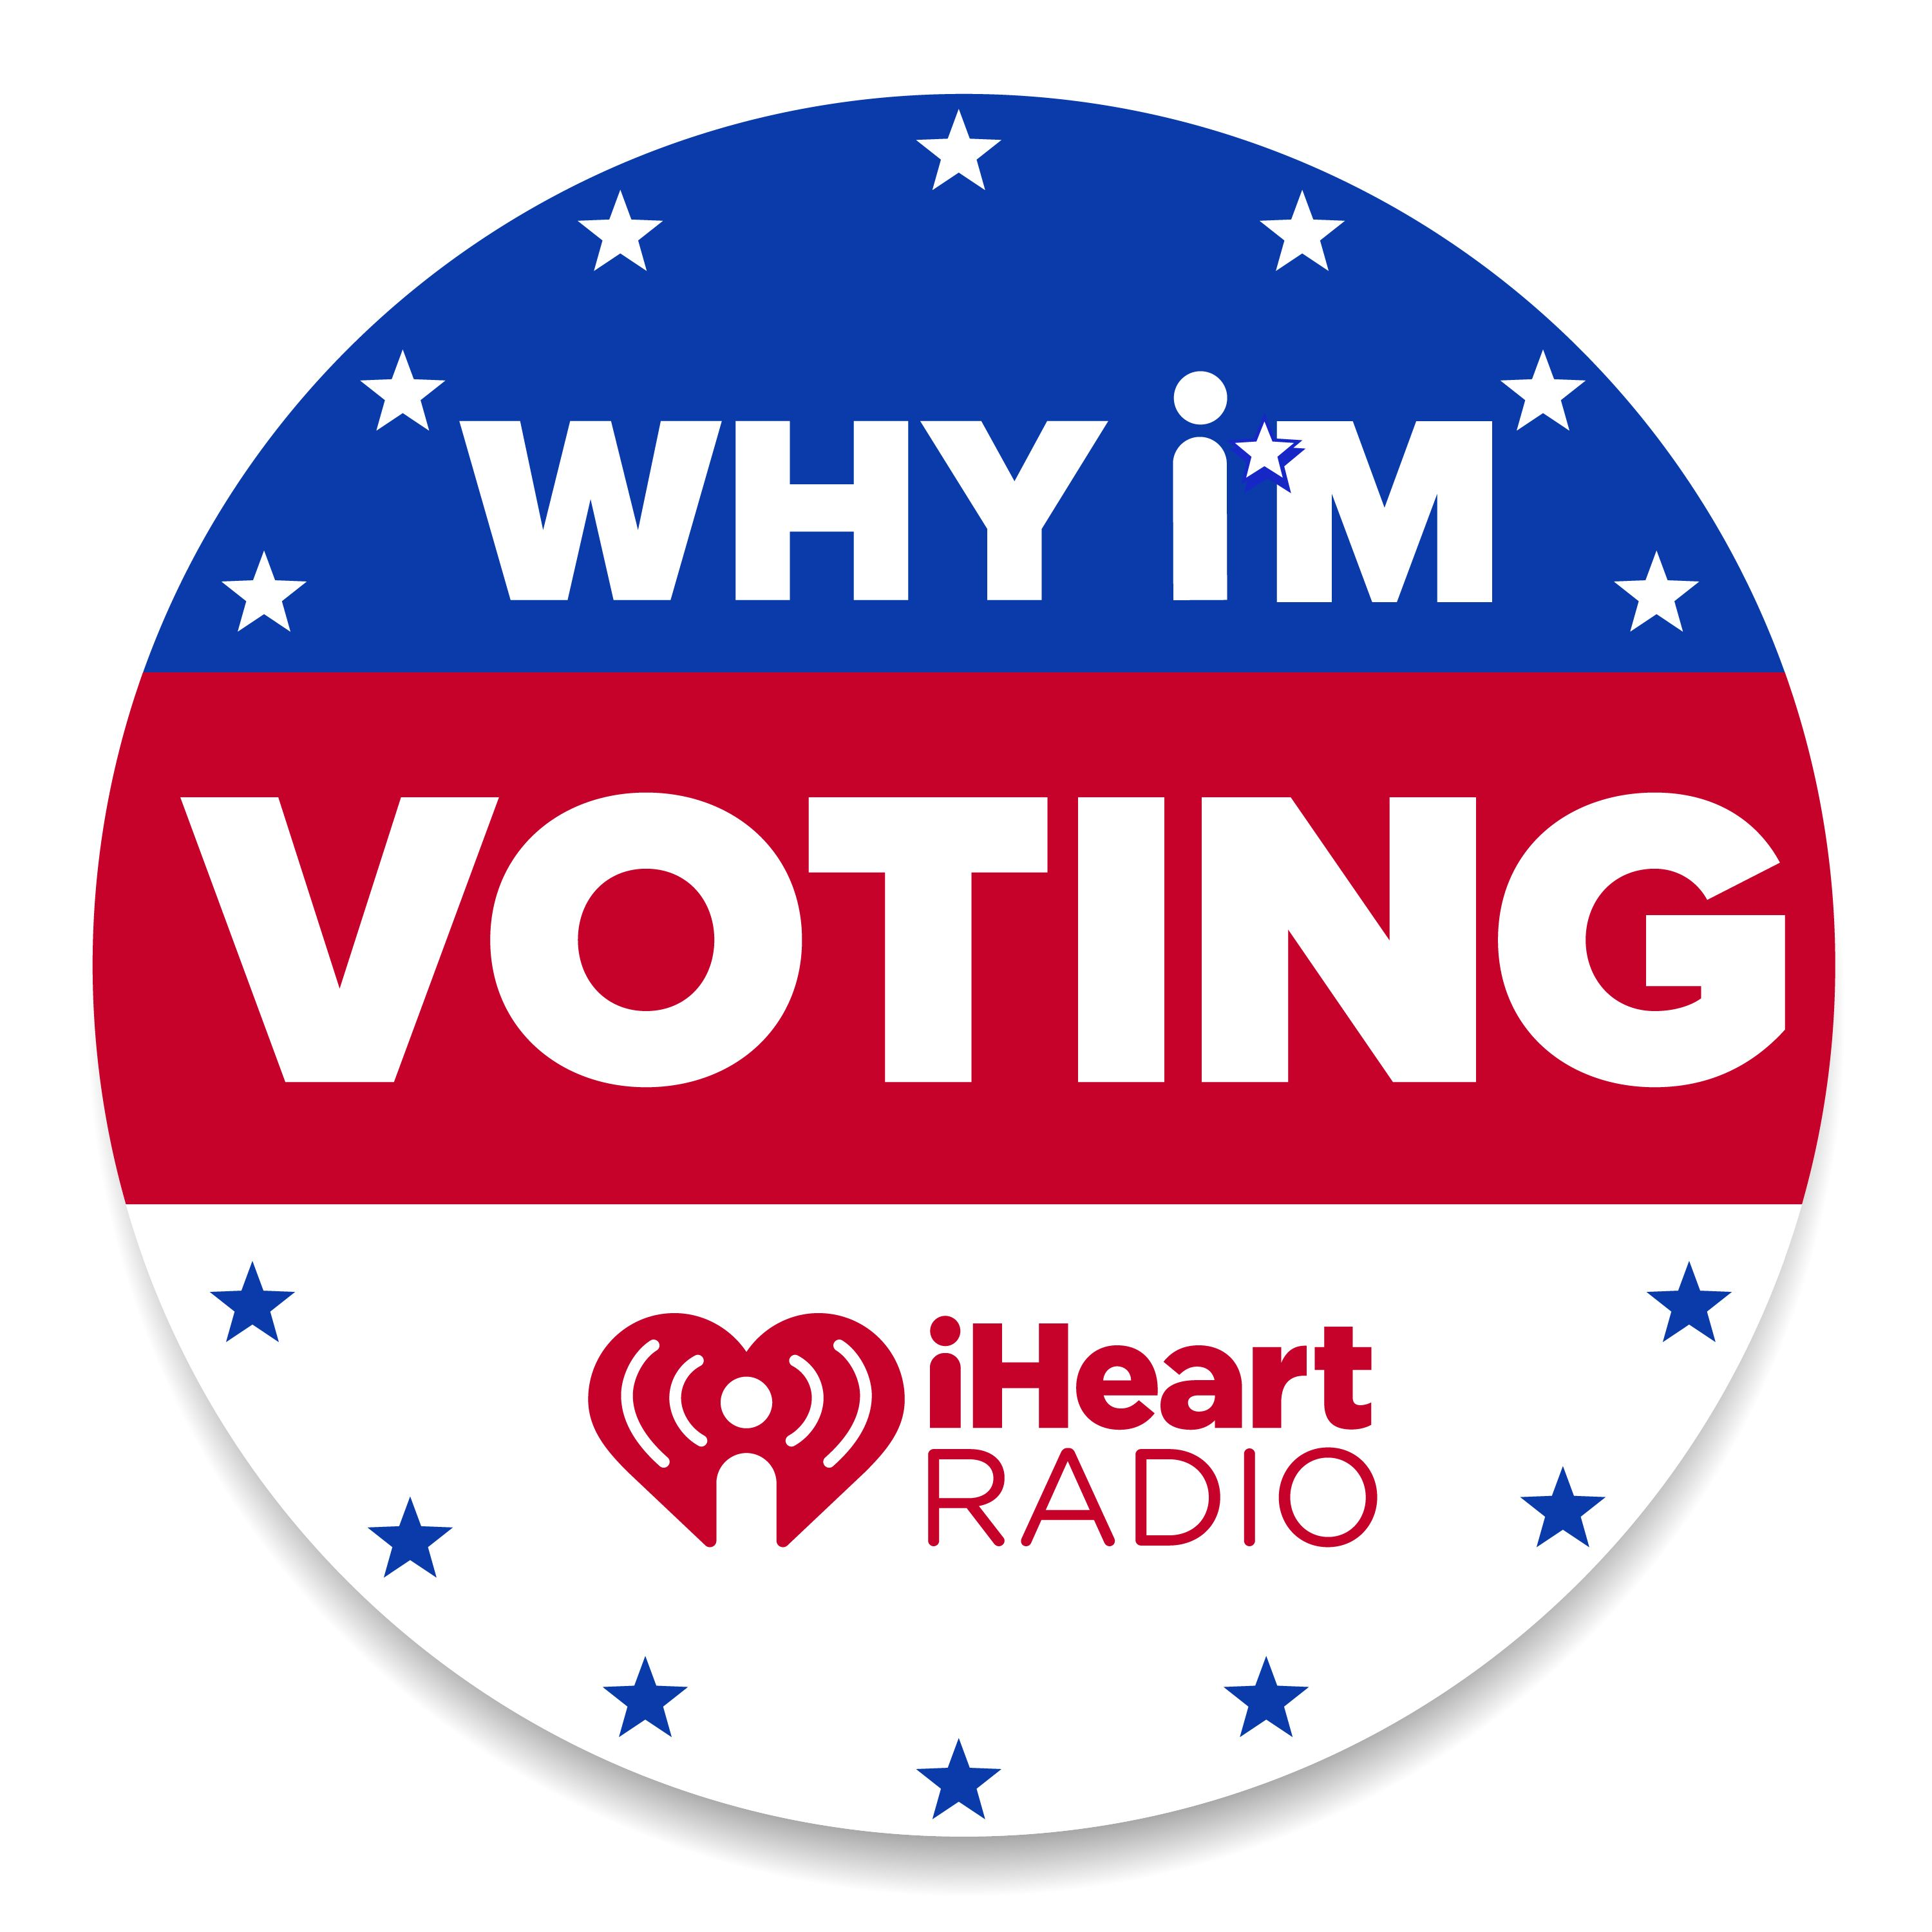 Chuck Bryant On The Why I'm Voting Podcast